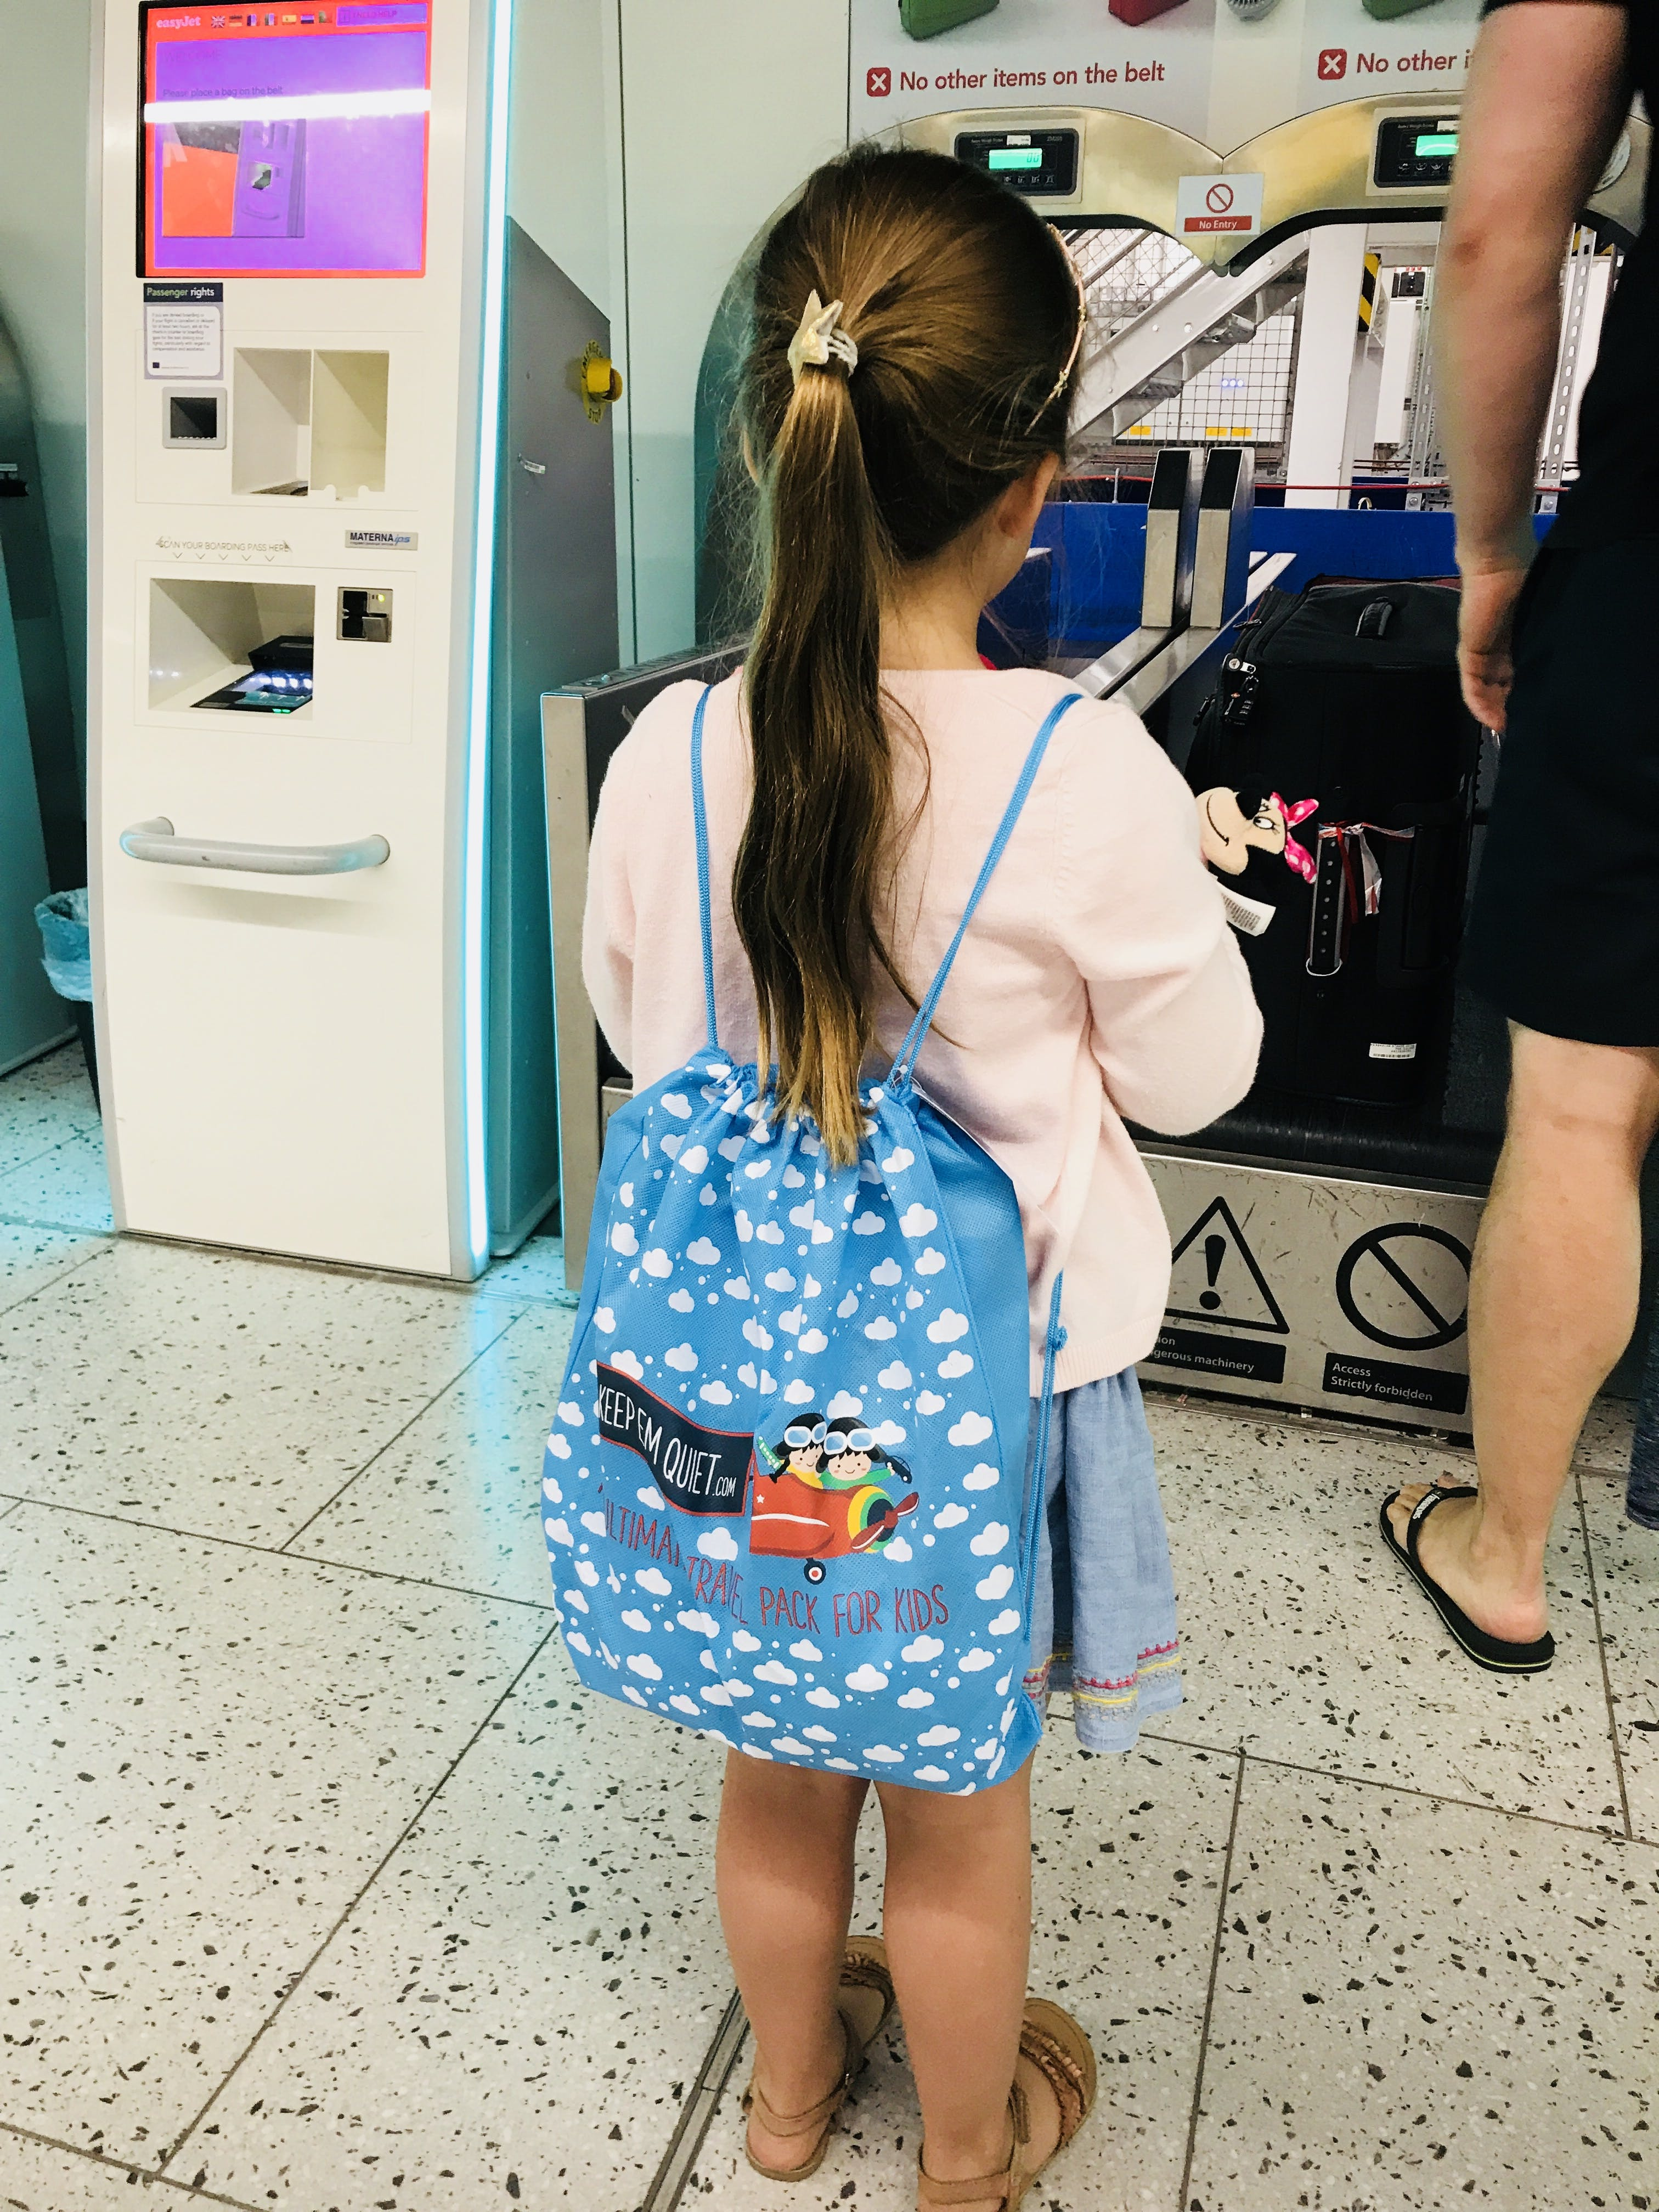 Long Trip: For Girls Age 3-5 Years